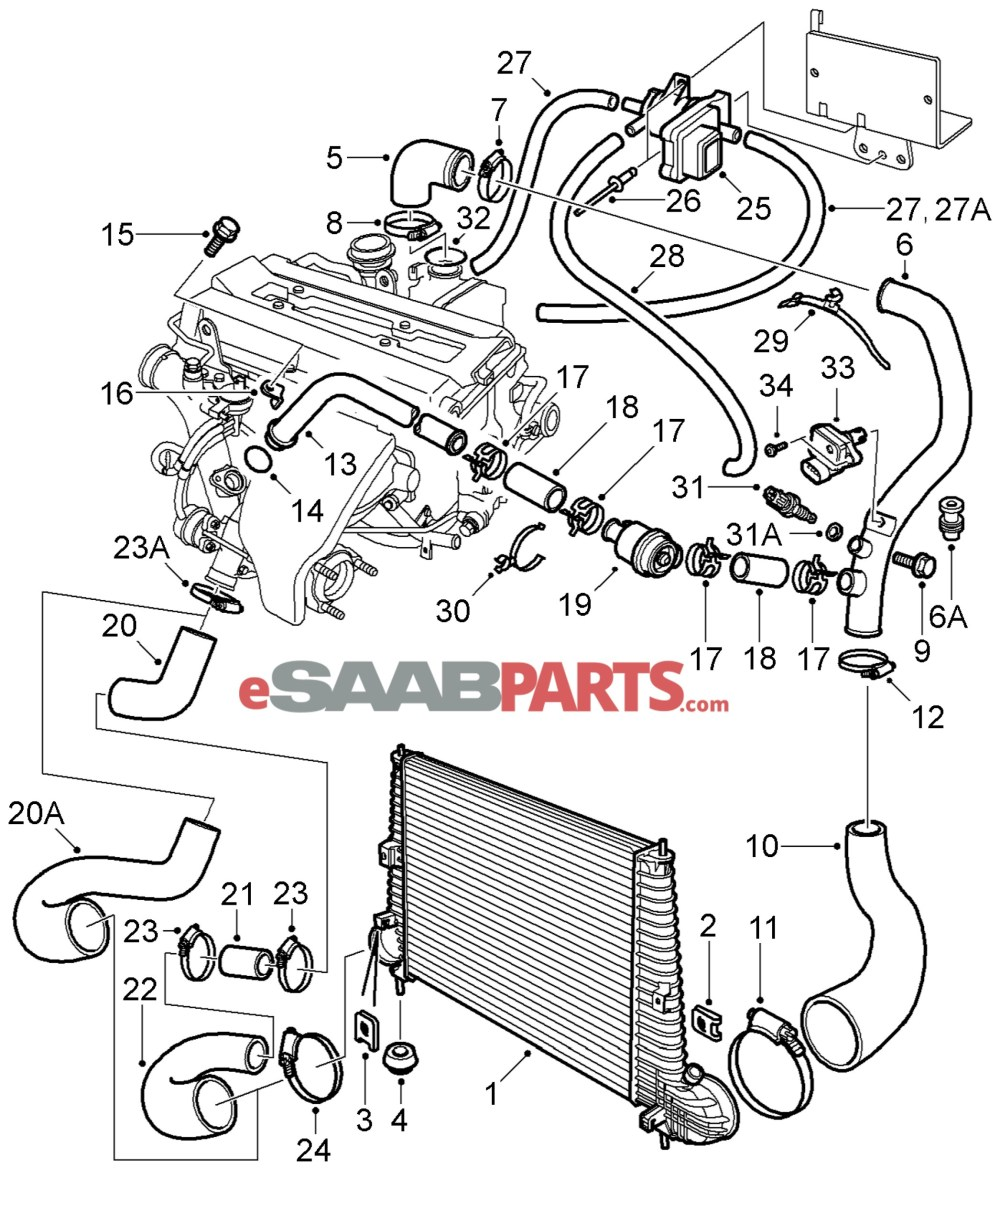 medium resolution of 1997 saab 900 radiator diagram on saab radiator diagram wiring diagram moreover saab 9 3 cooling